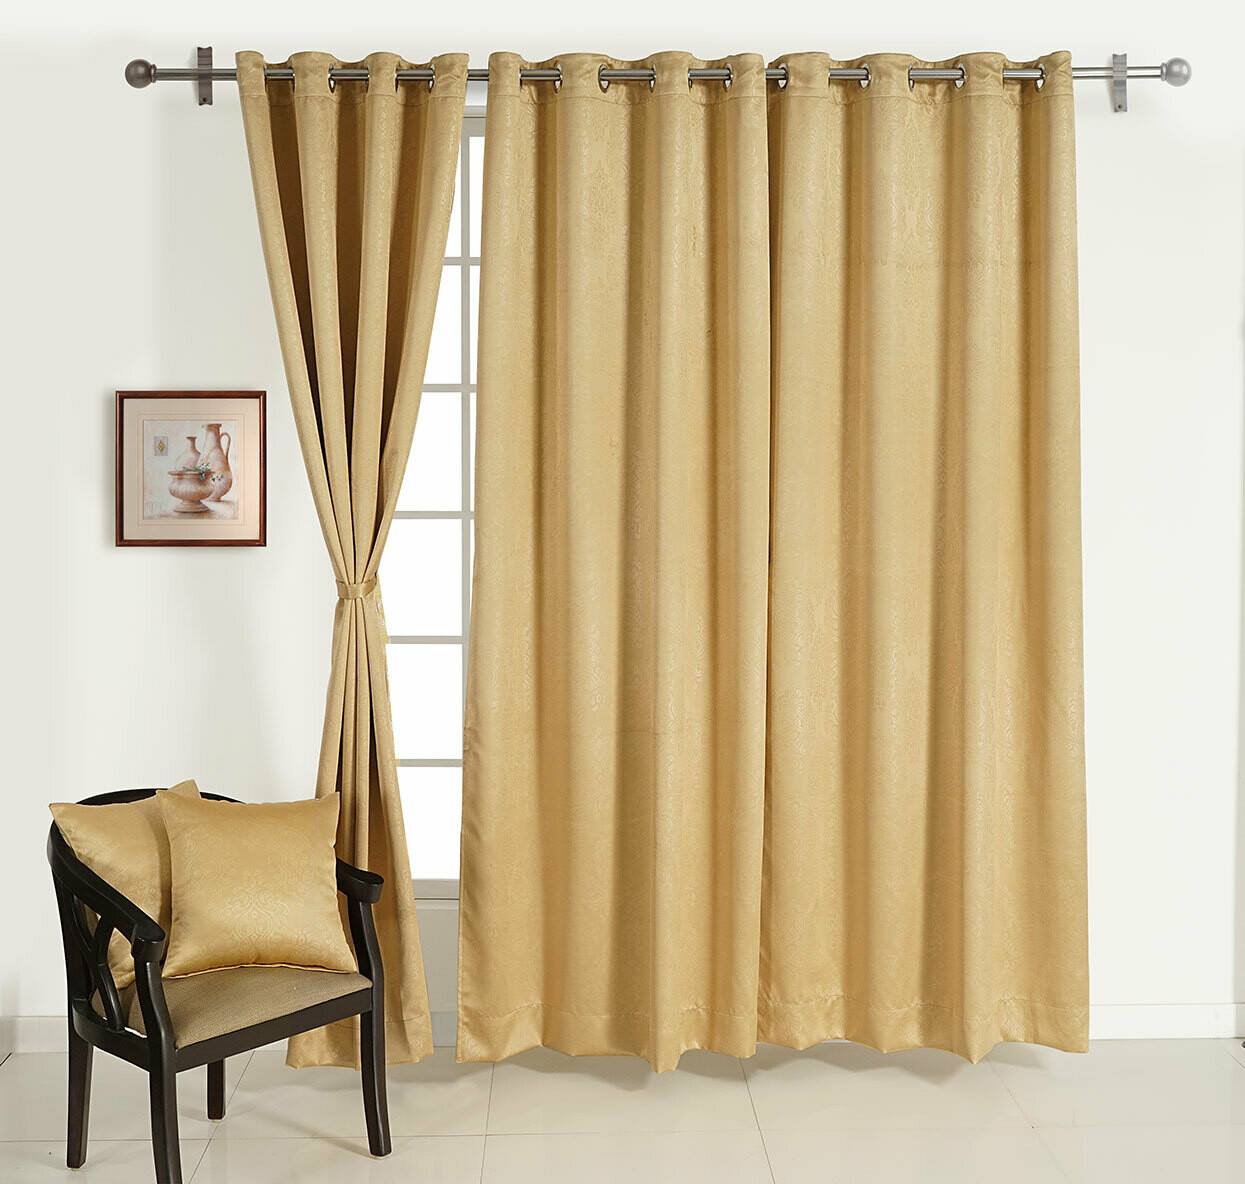 Swayam Beige Colour Motif J&B Blackout Eyelet Curtain for Door